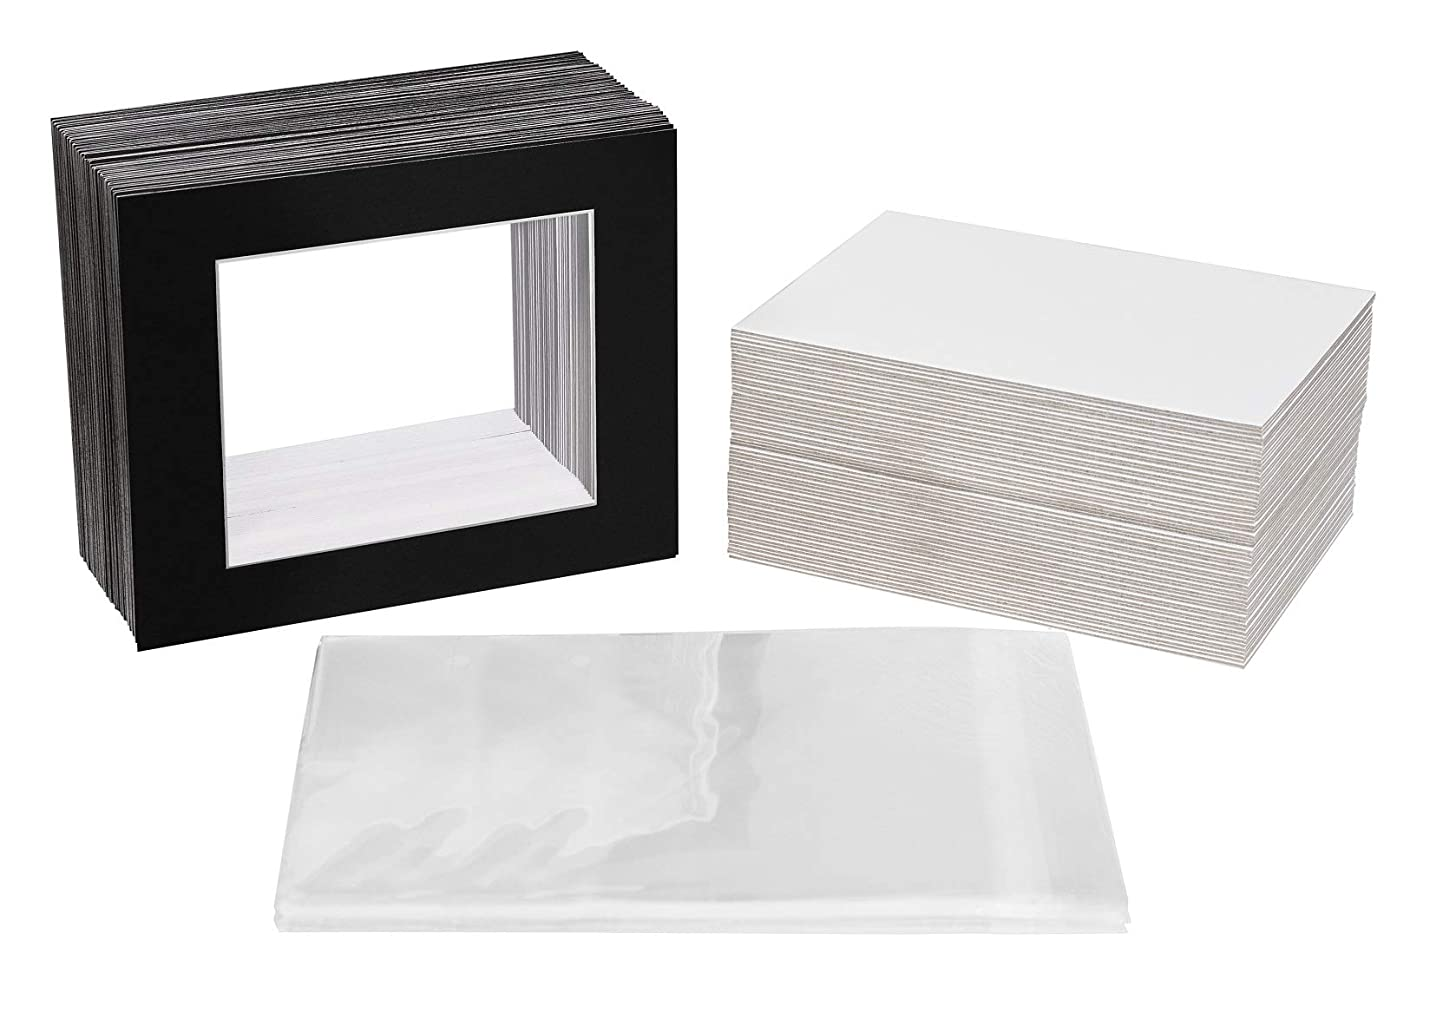 Golden State Art, Acid Free, Pack of 50 11x14 Black Picture Mats Mattes with White Core Bevel Cut for 8x10 Photo + Backing + Bags